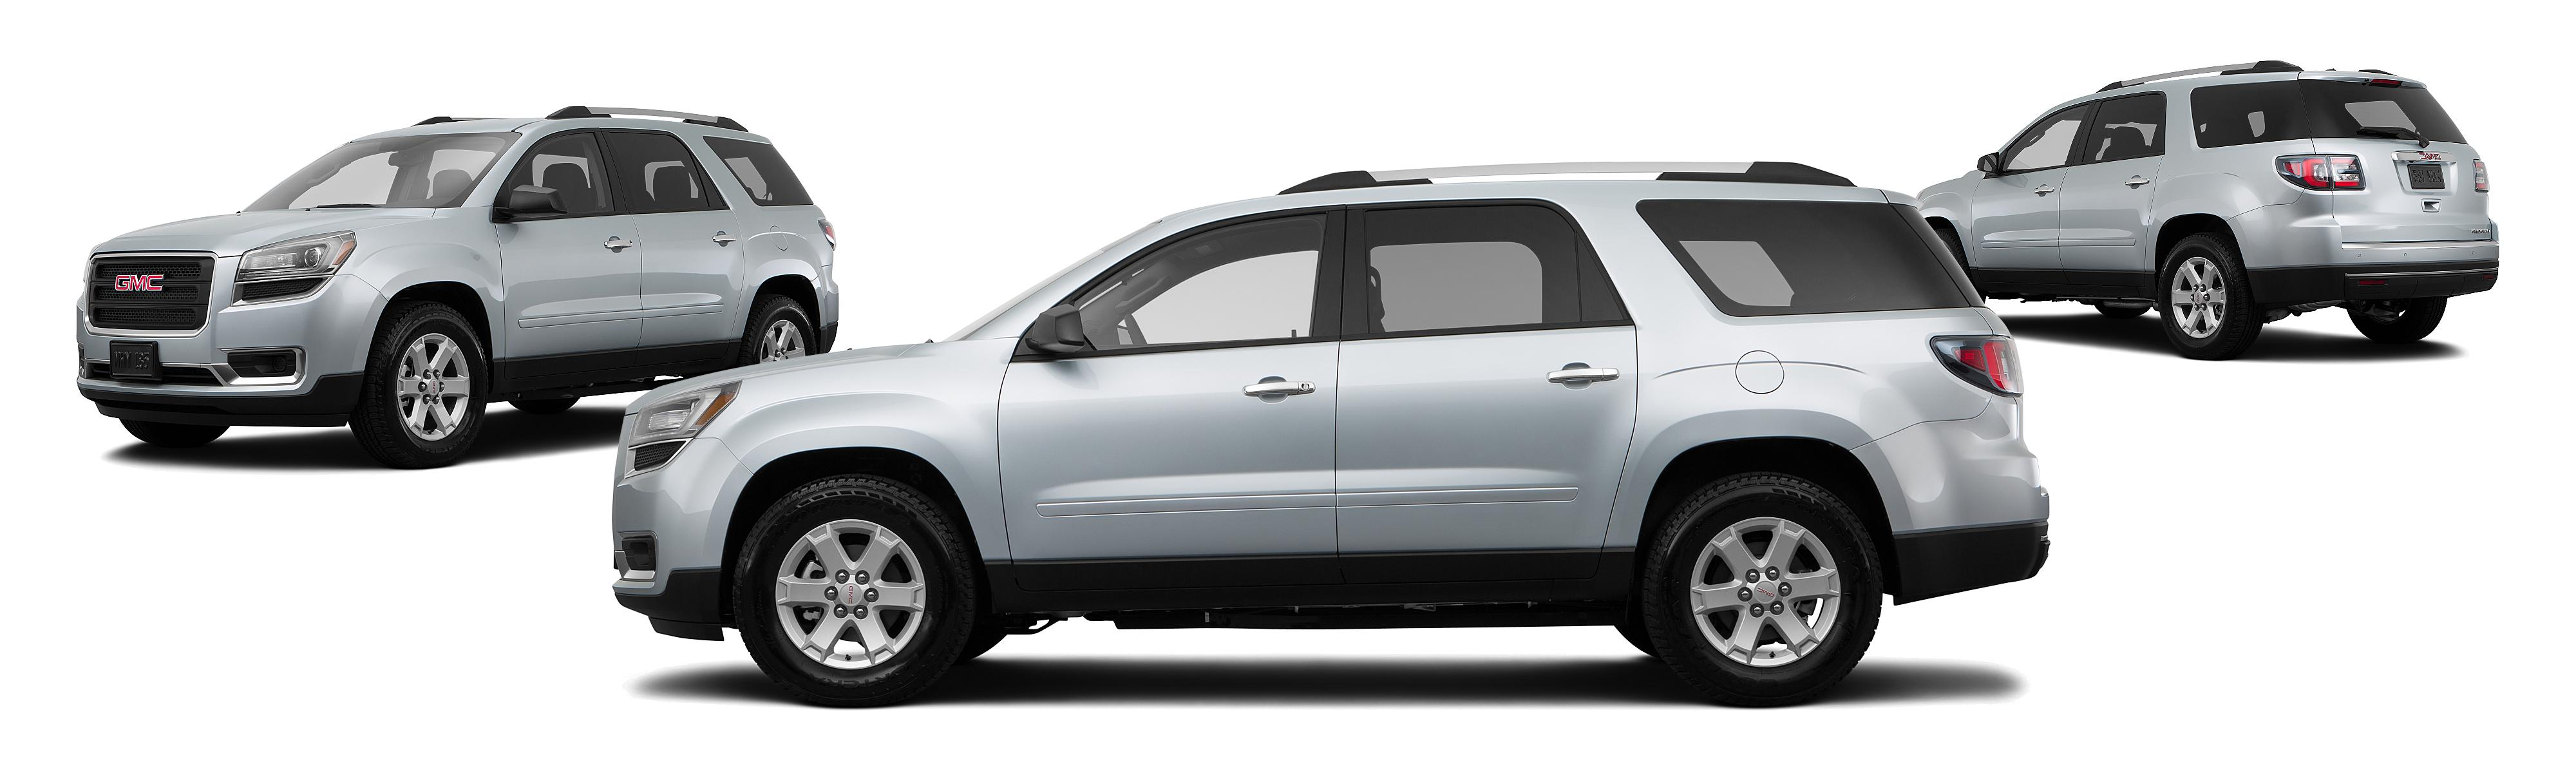 denali mom gmc img row s a for of in review acadia family reviews